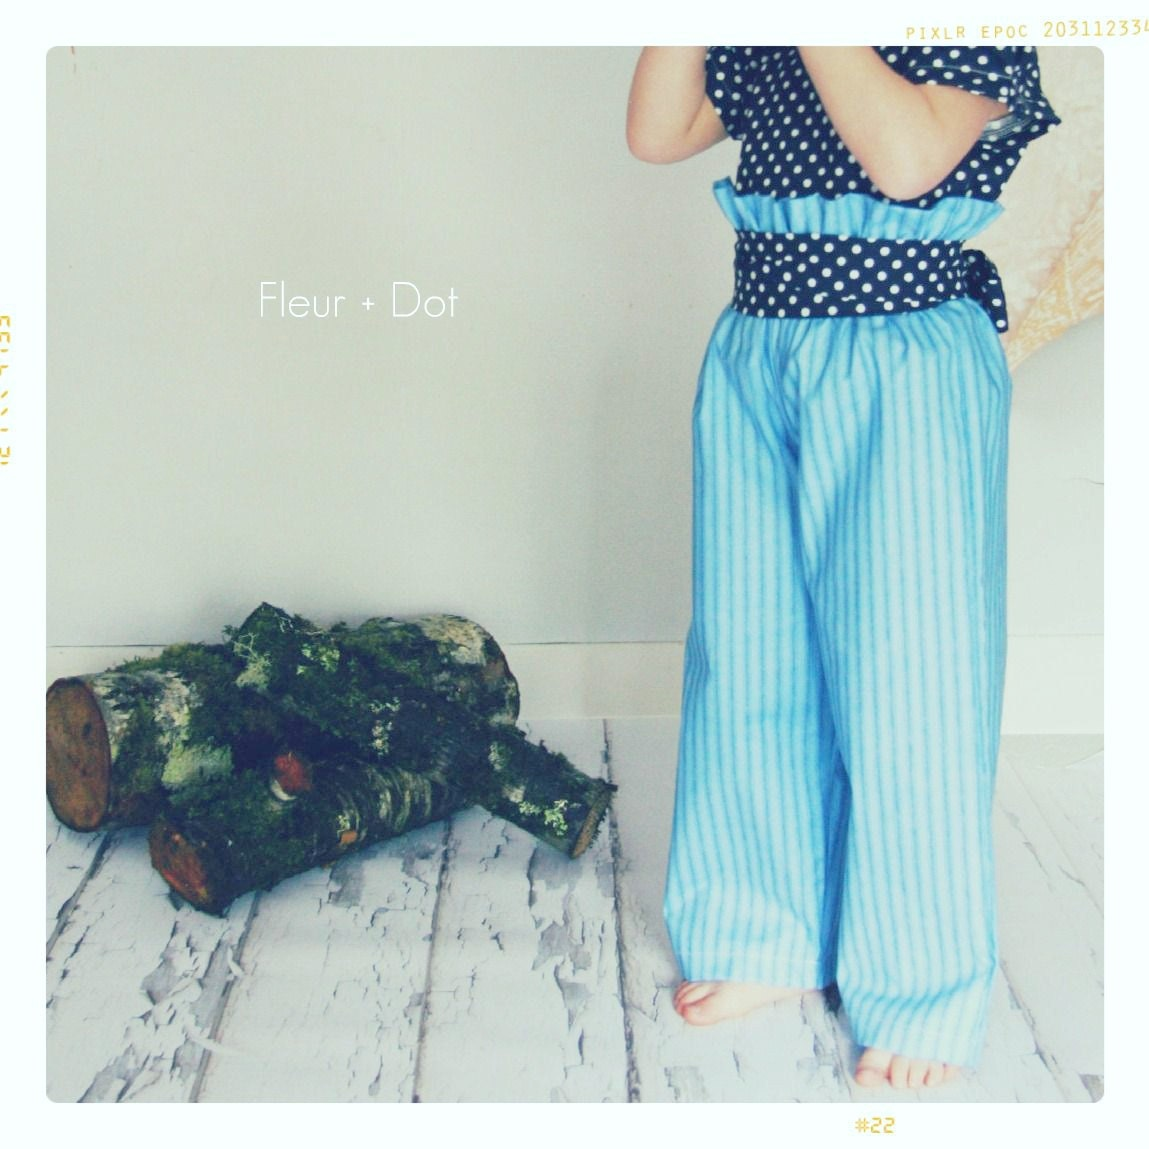 Girls Pants: The Blue Striped Ruffle Top Wide Leg Trousers from the Autumn Winter Collection by Fleur and Dot - FleurandDot